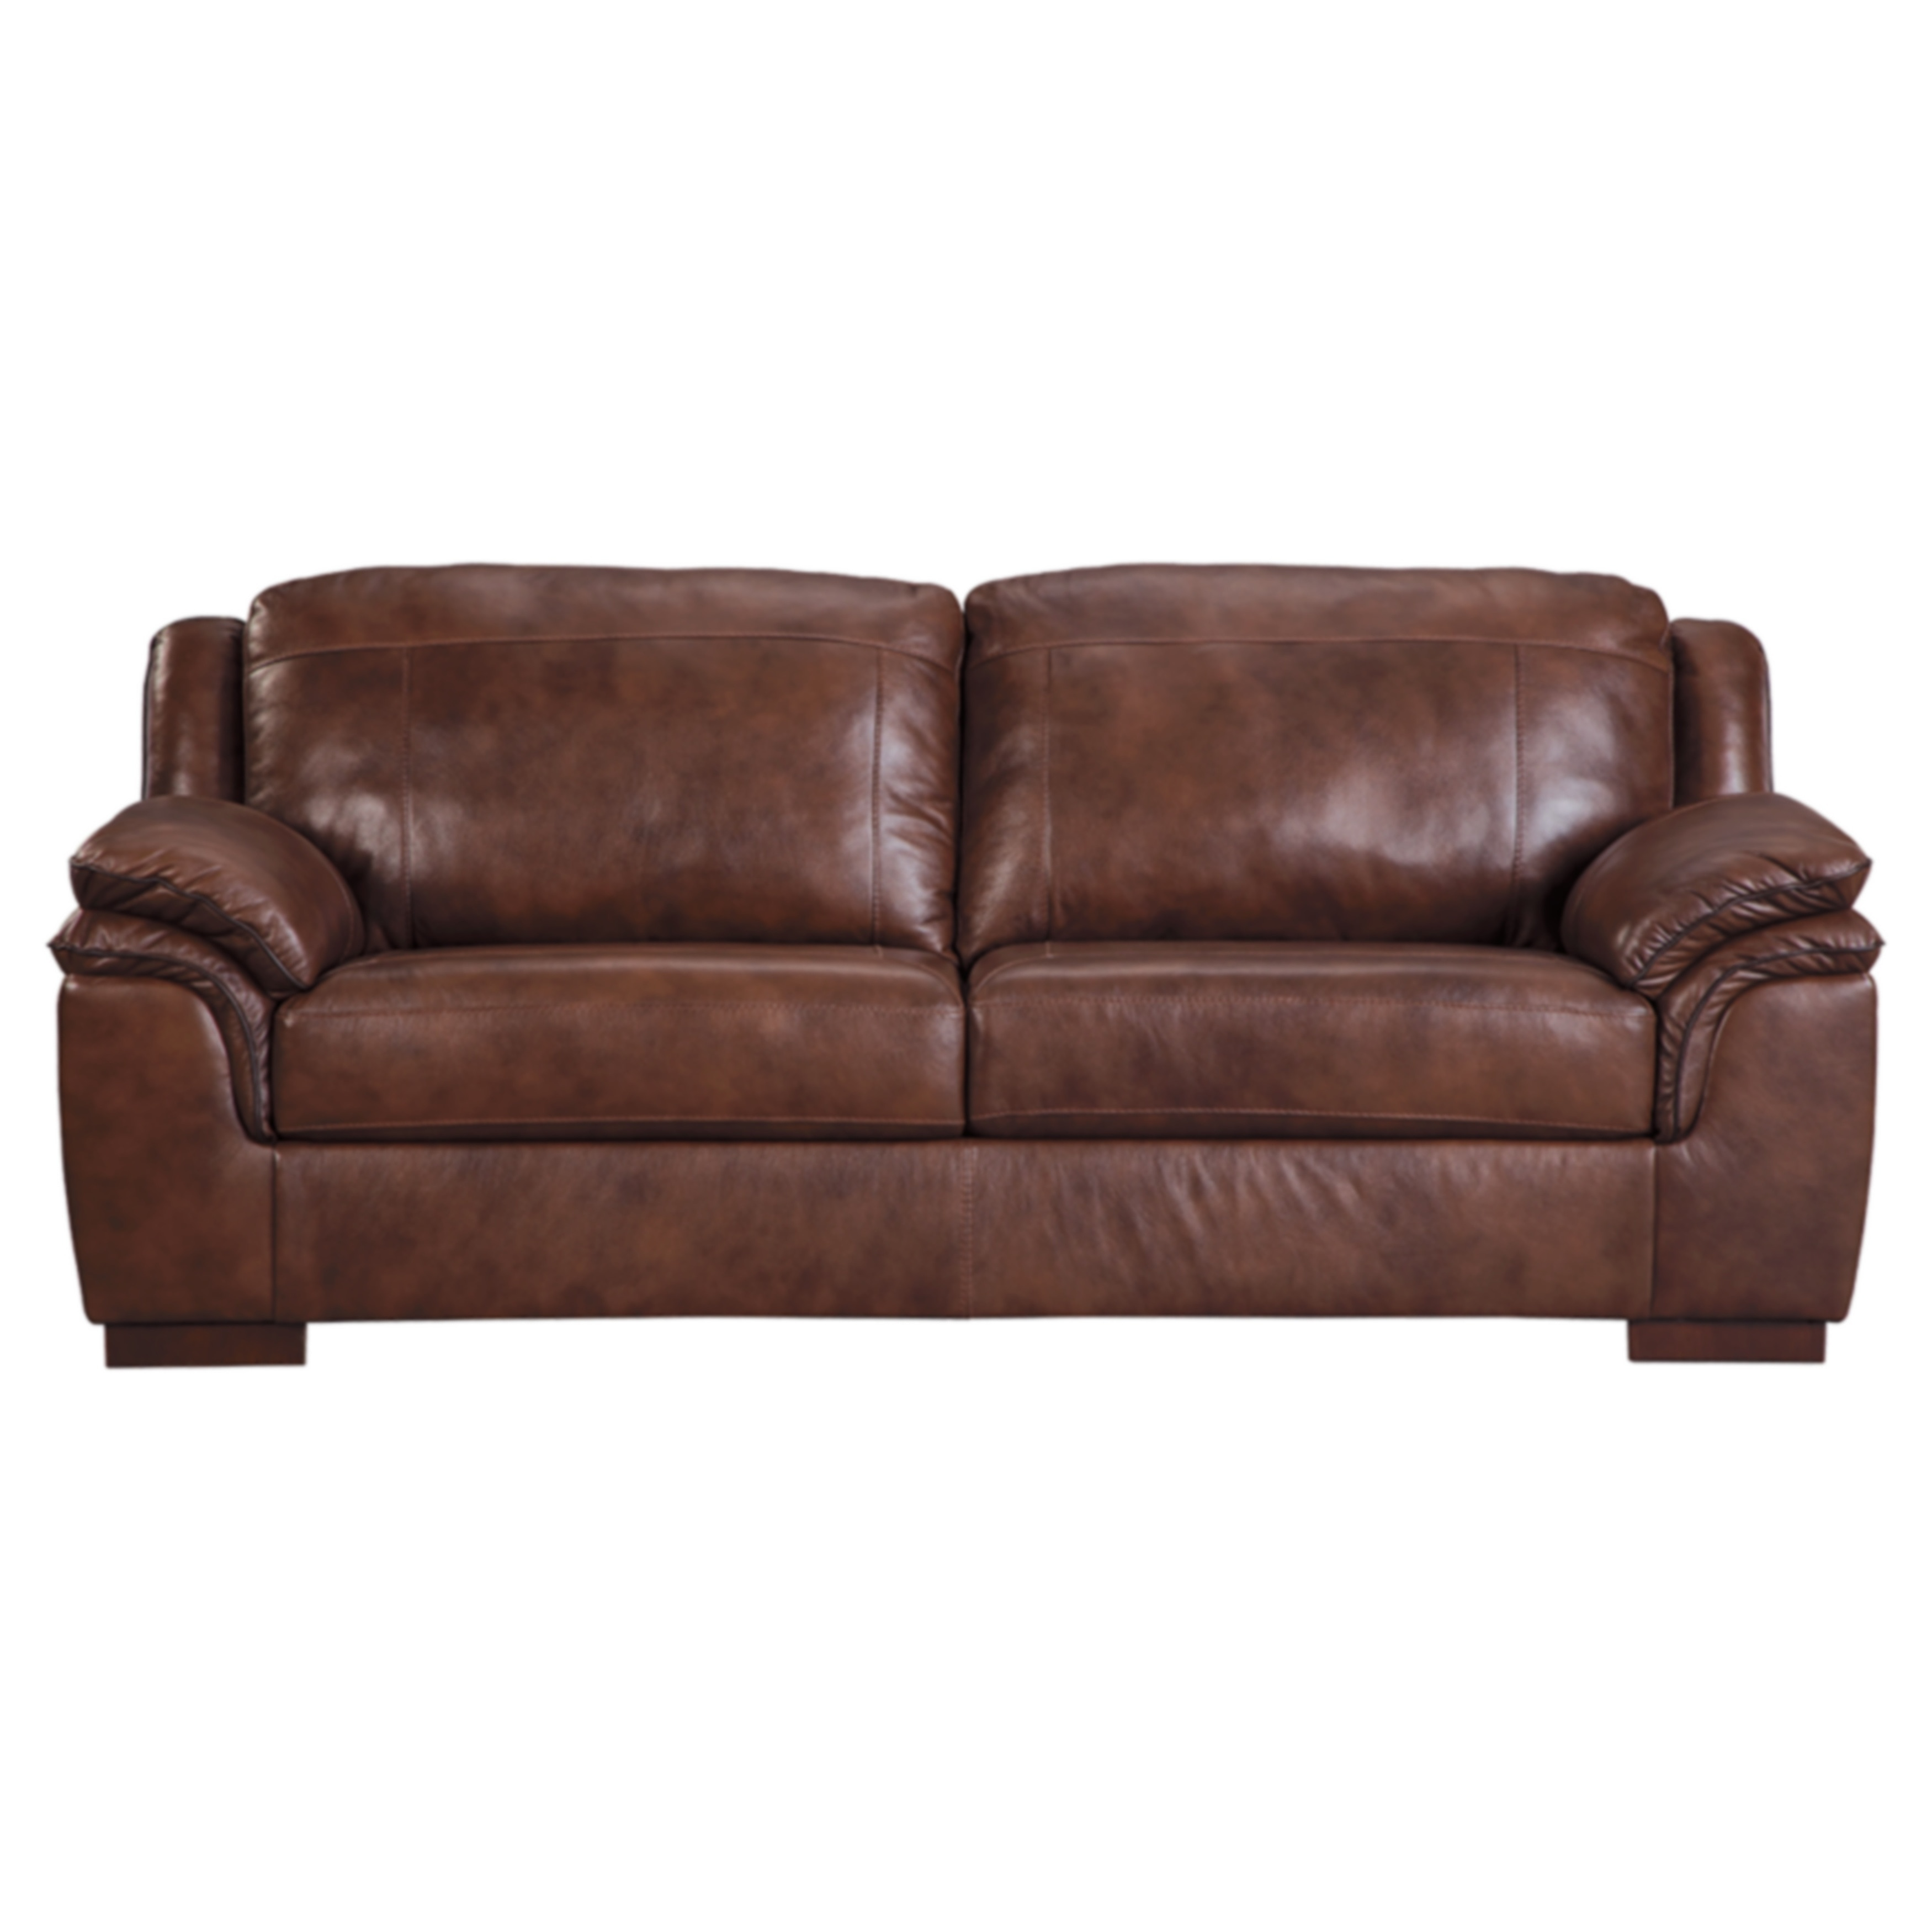 buy sofas couches online